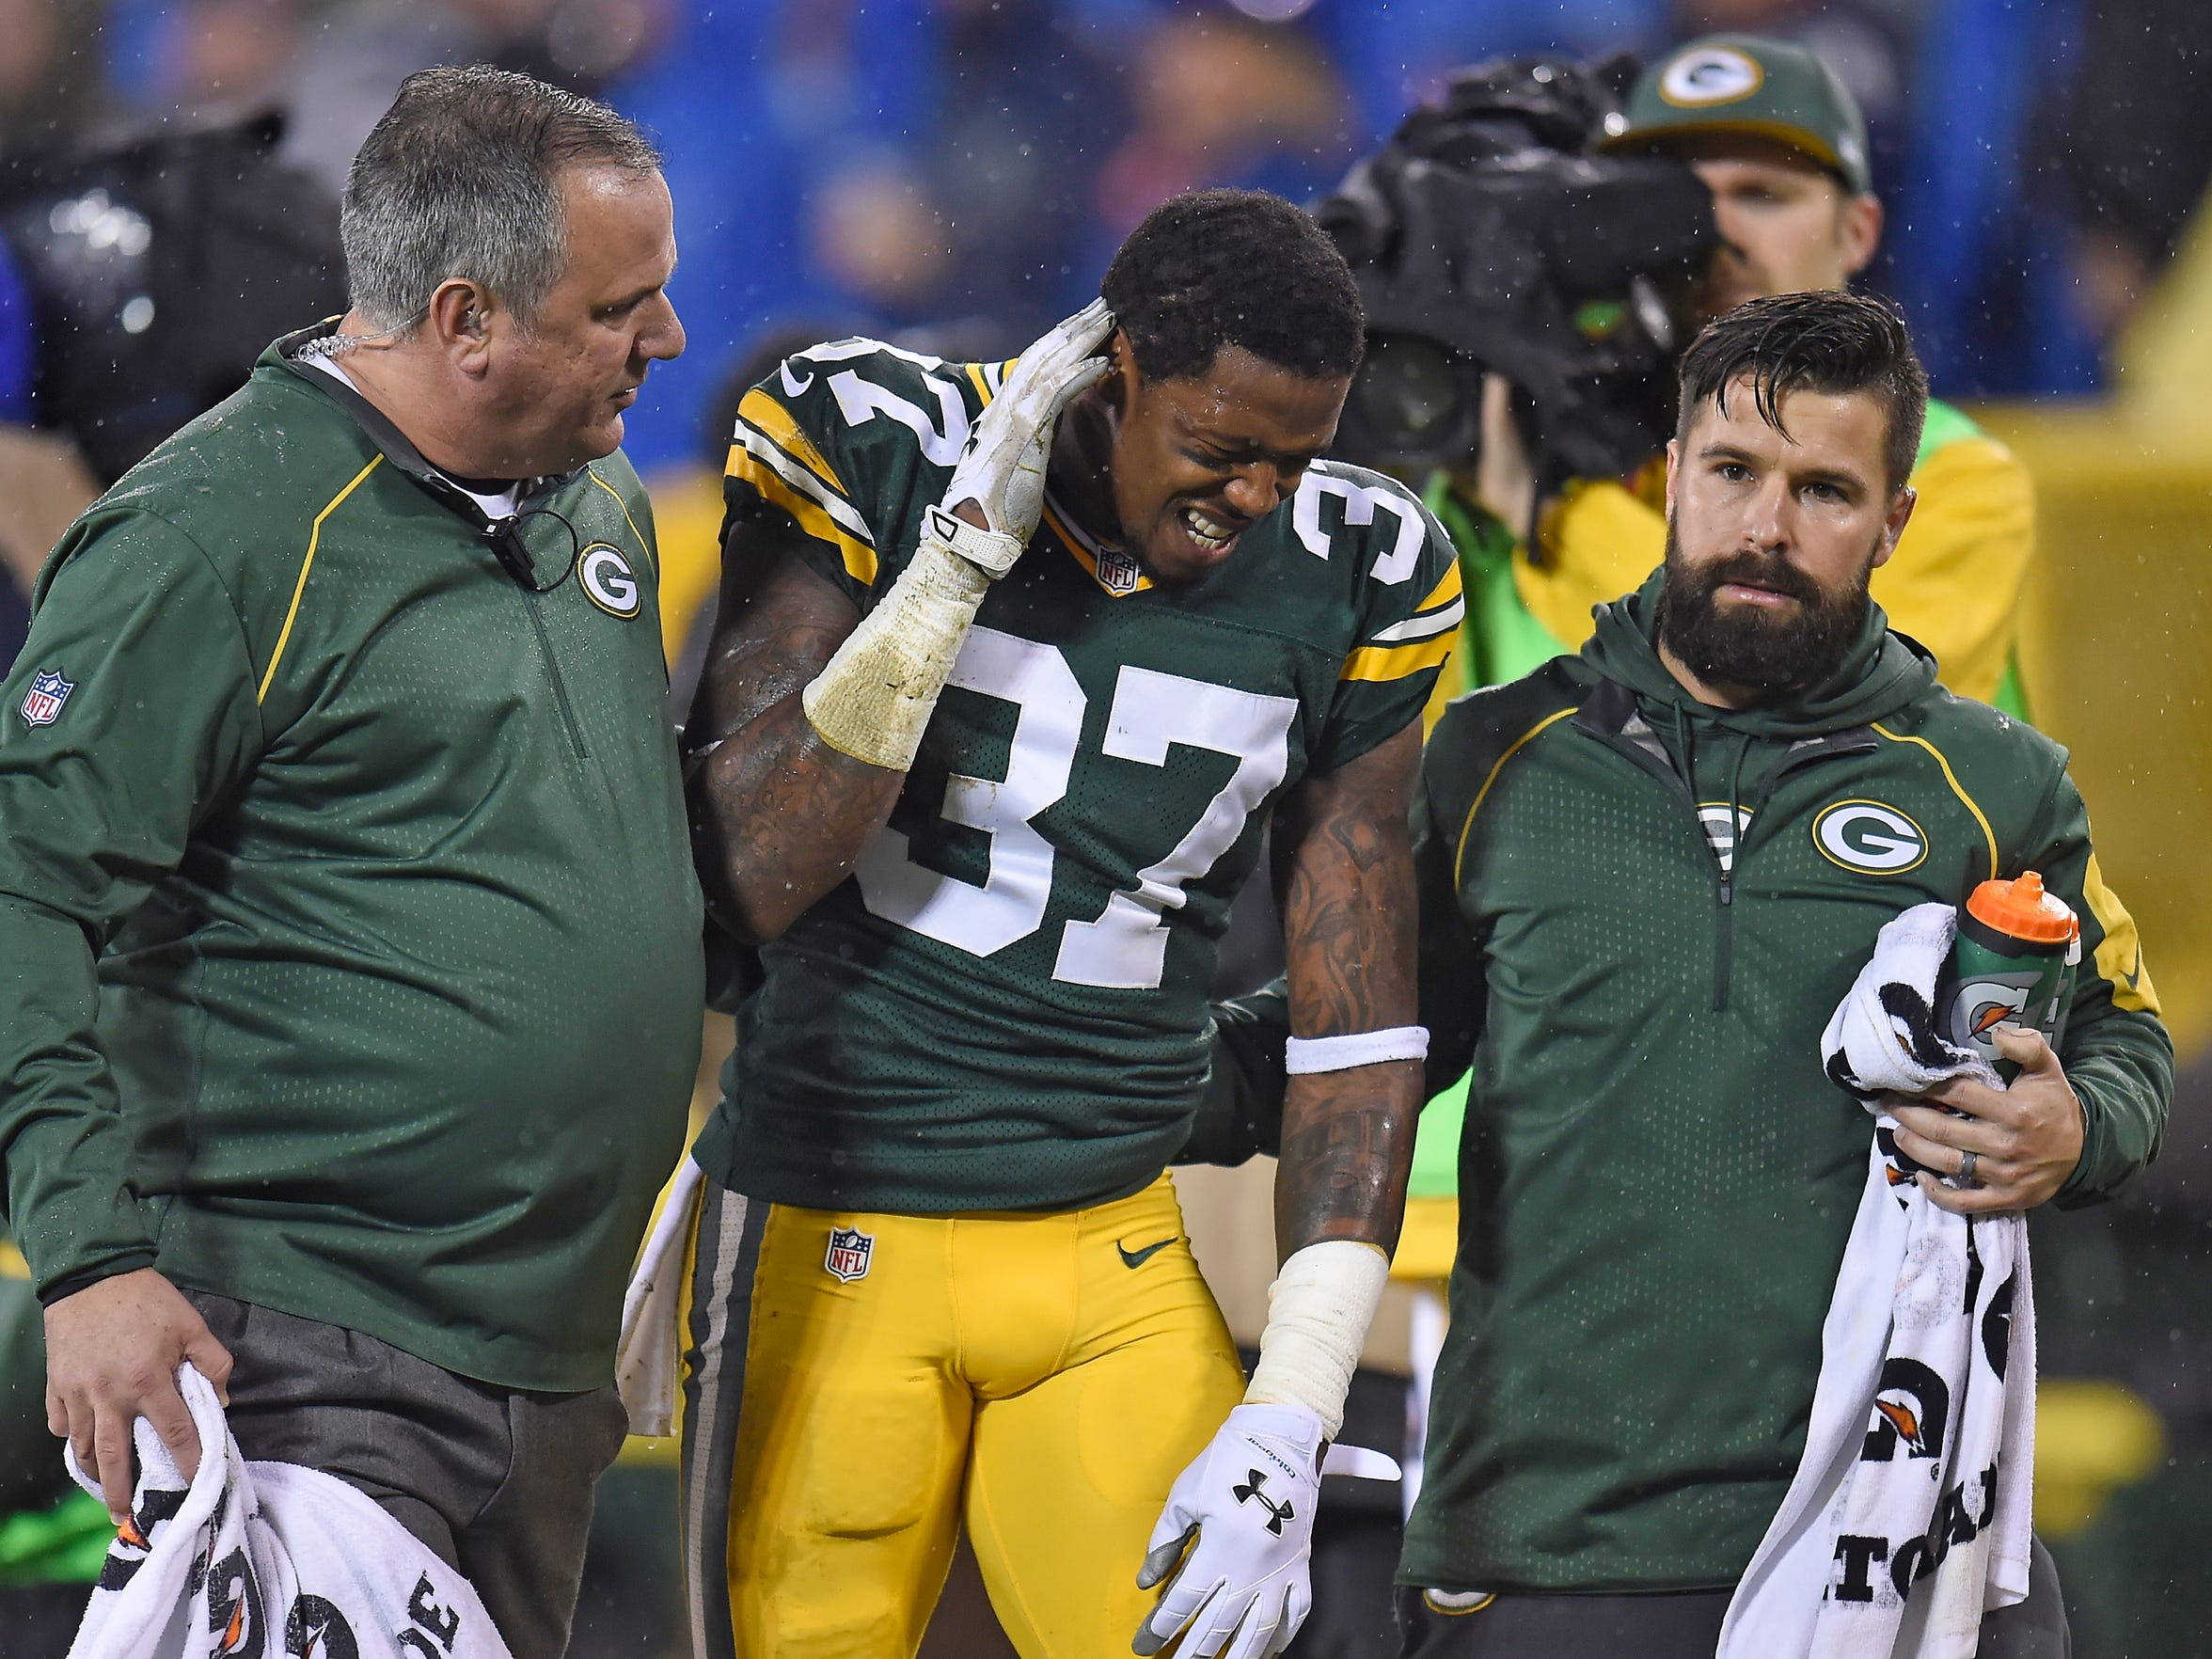 Green Bay Packers cornerback Sam Shields suffered a concussion in the Dec. 13 game against the Dallas Cowboys.